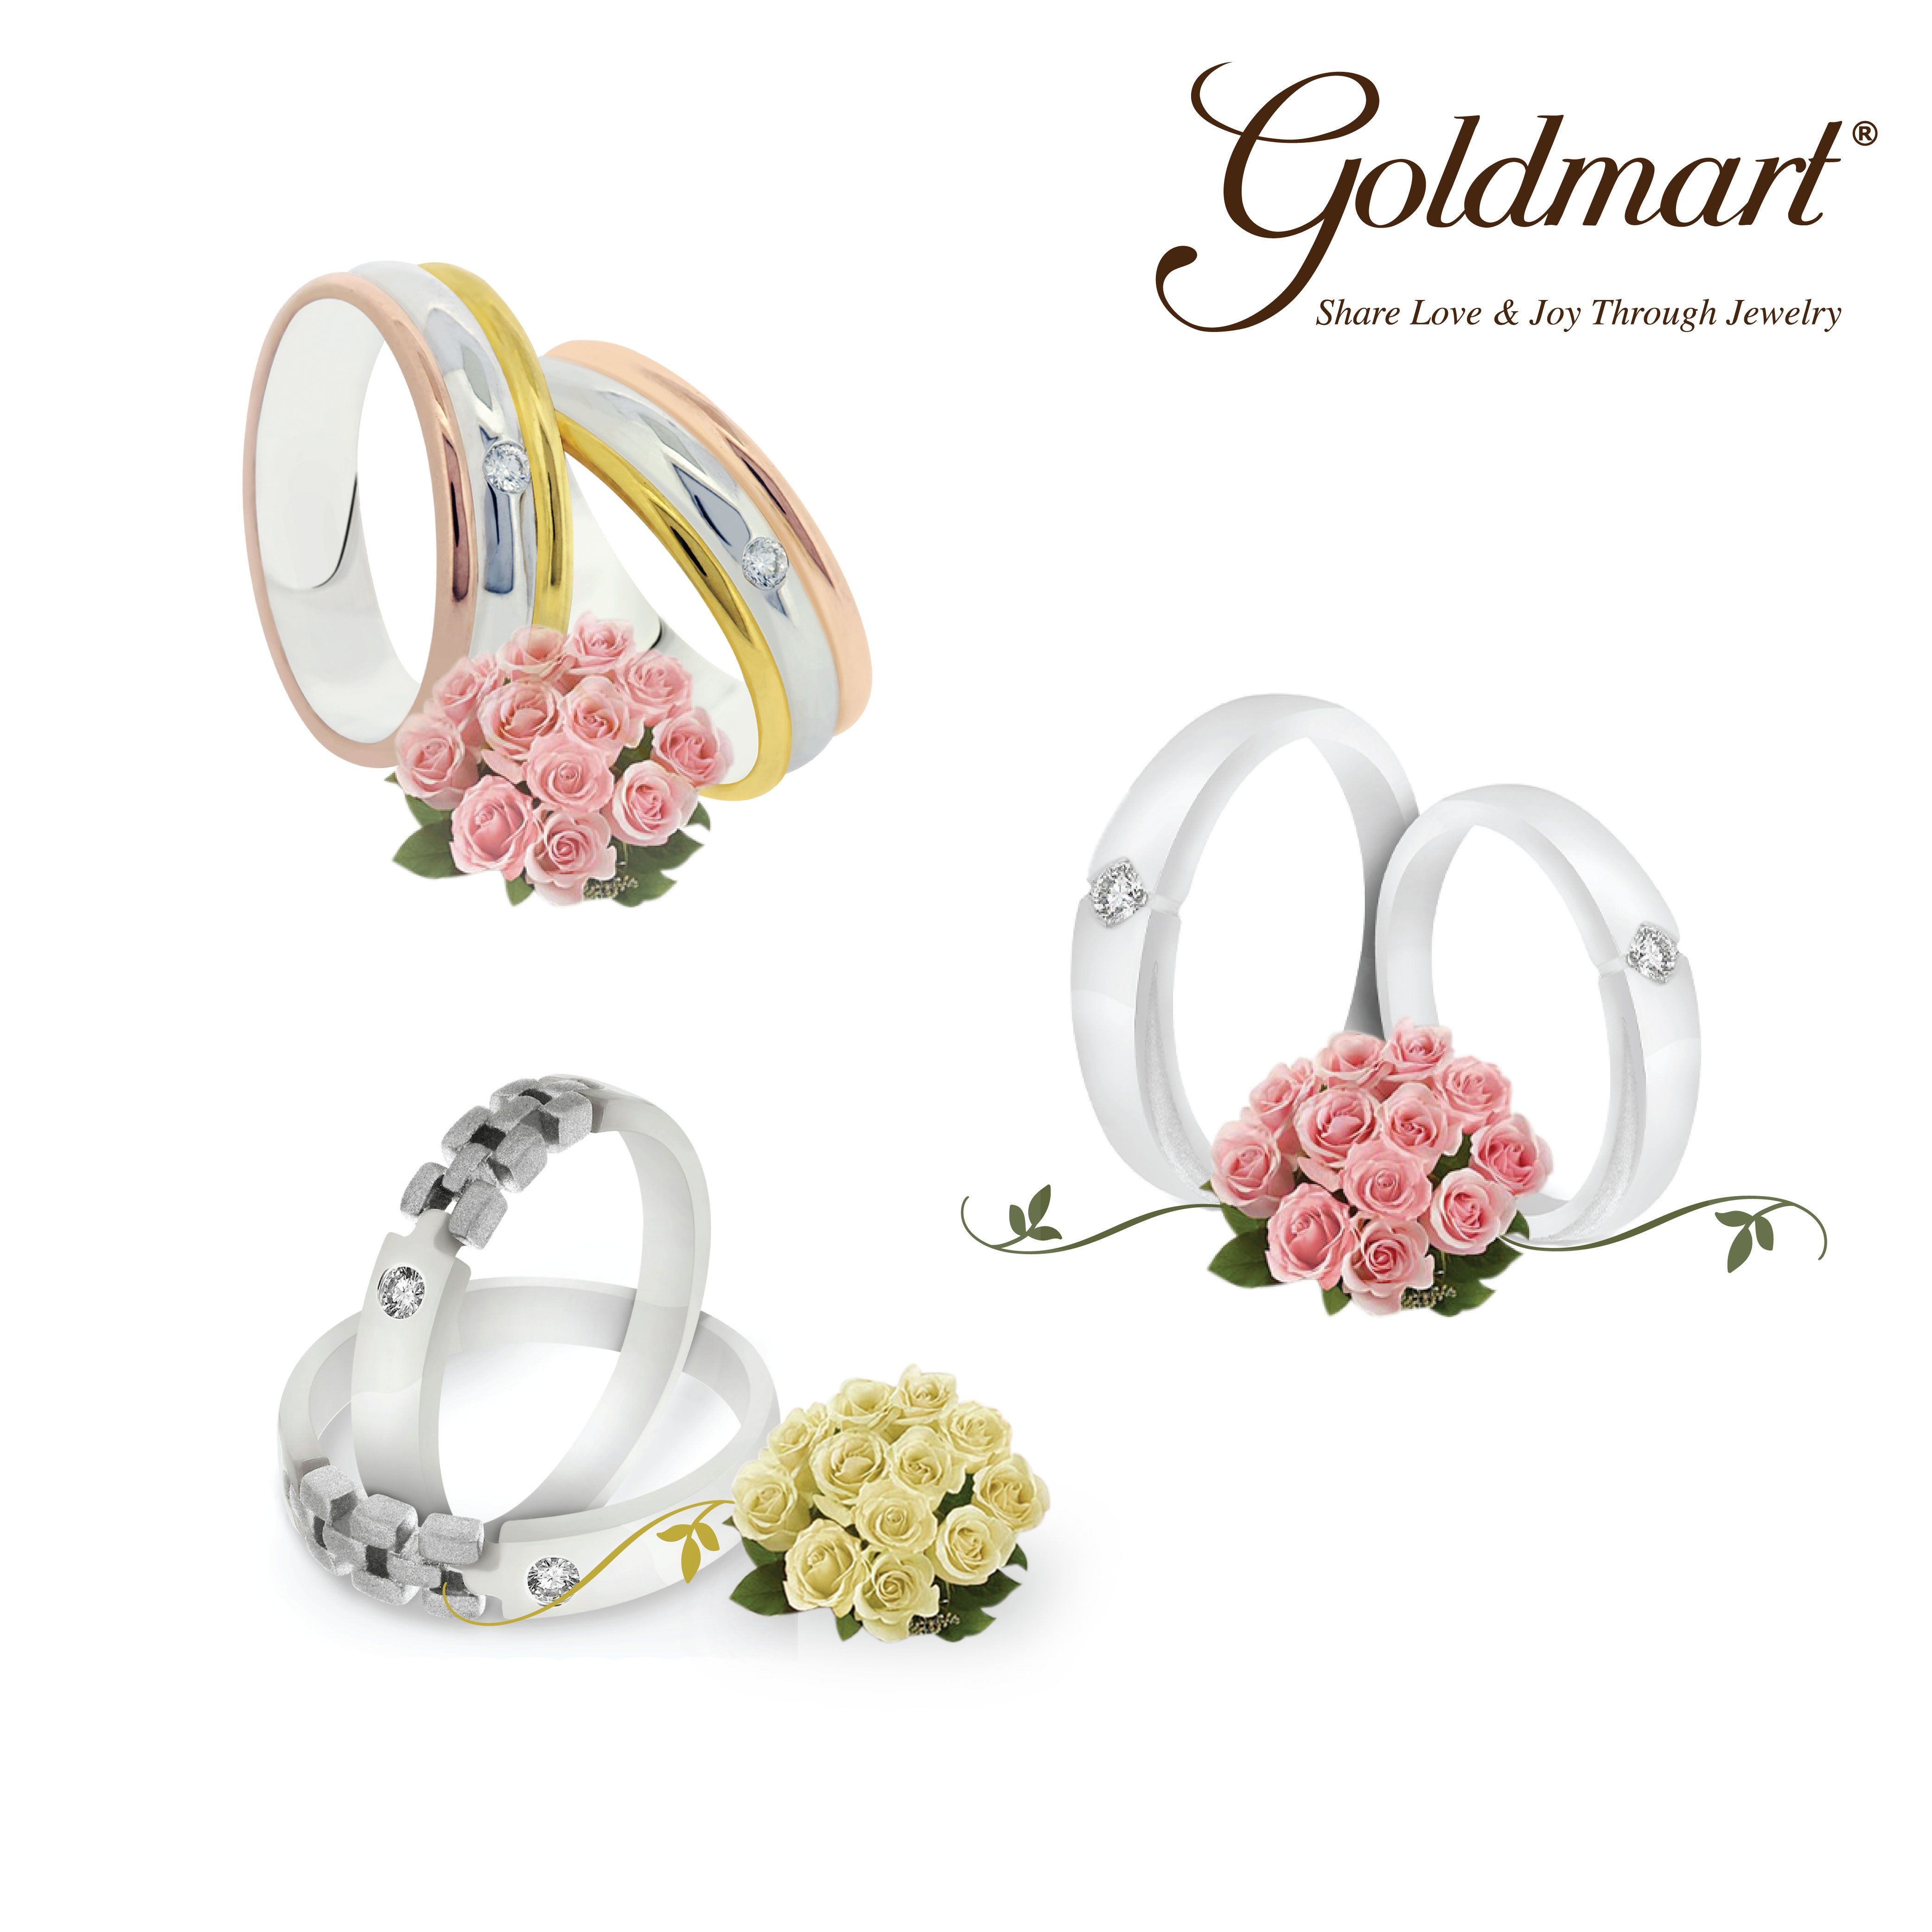 Pin by Goldmart Jewelry on Goldmart Wedding Ring Collection